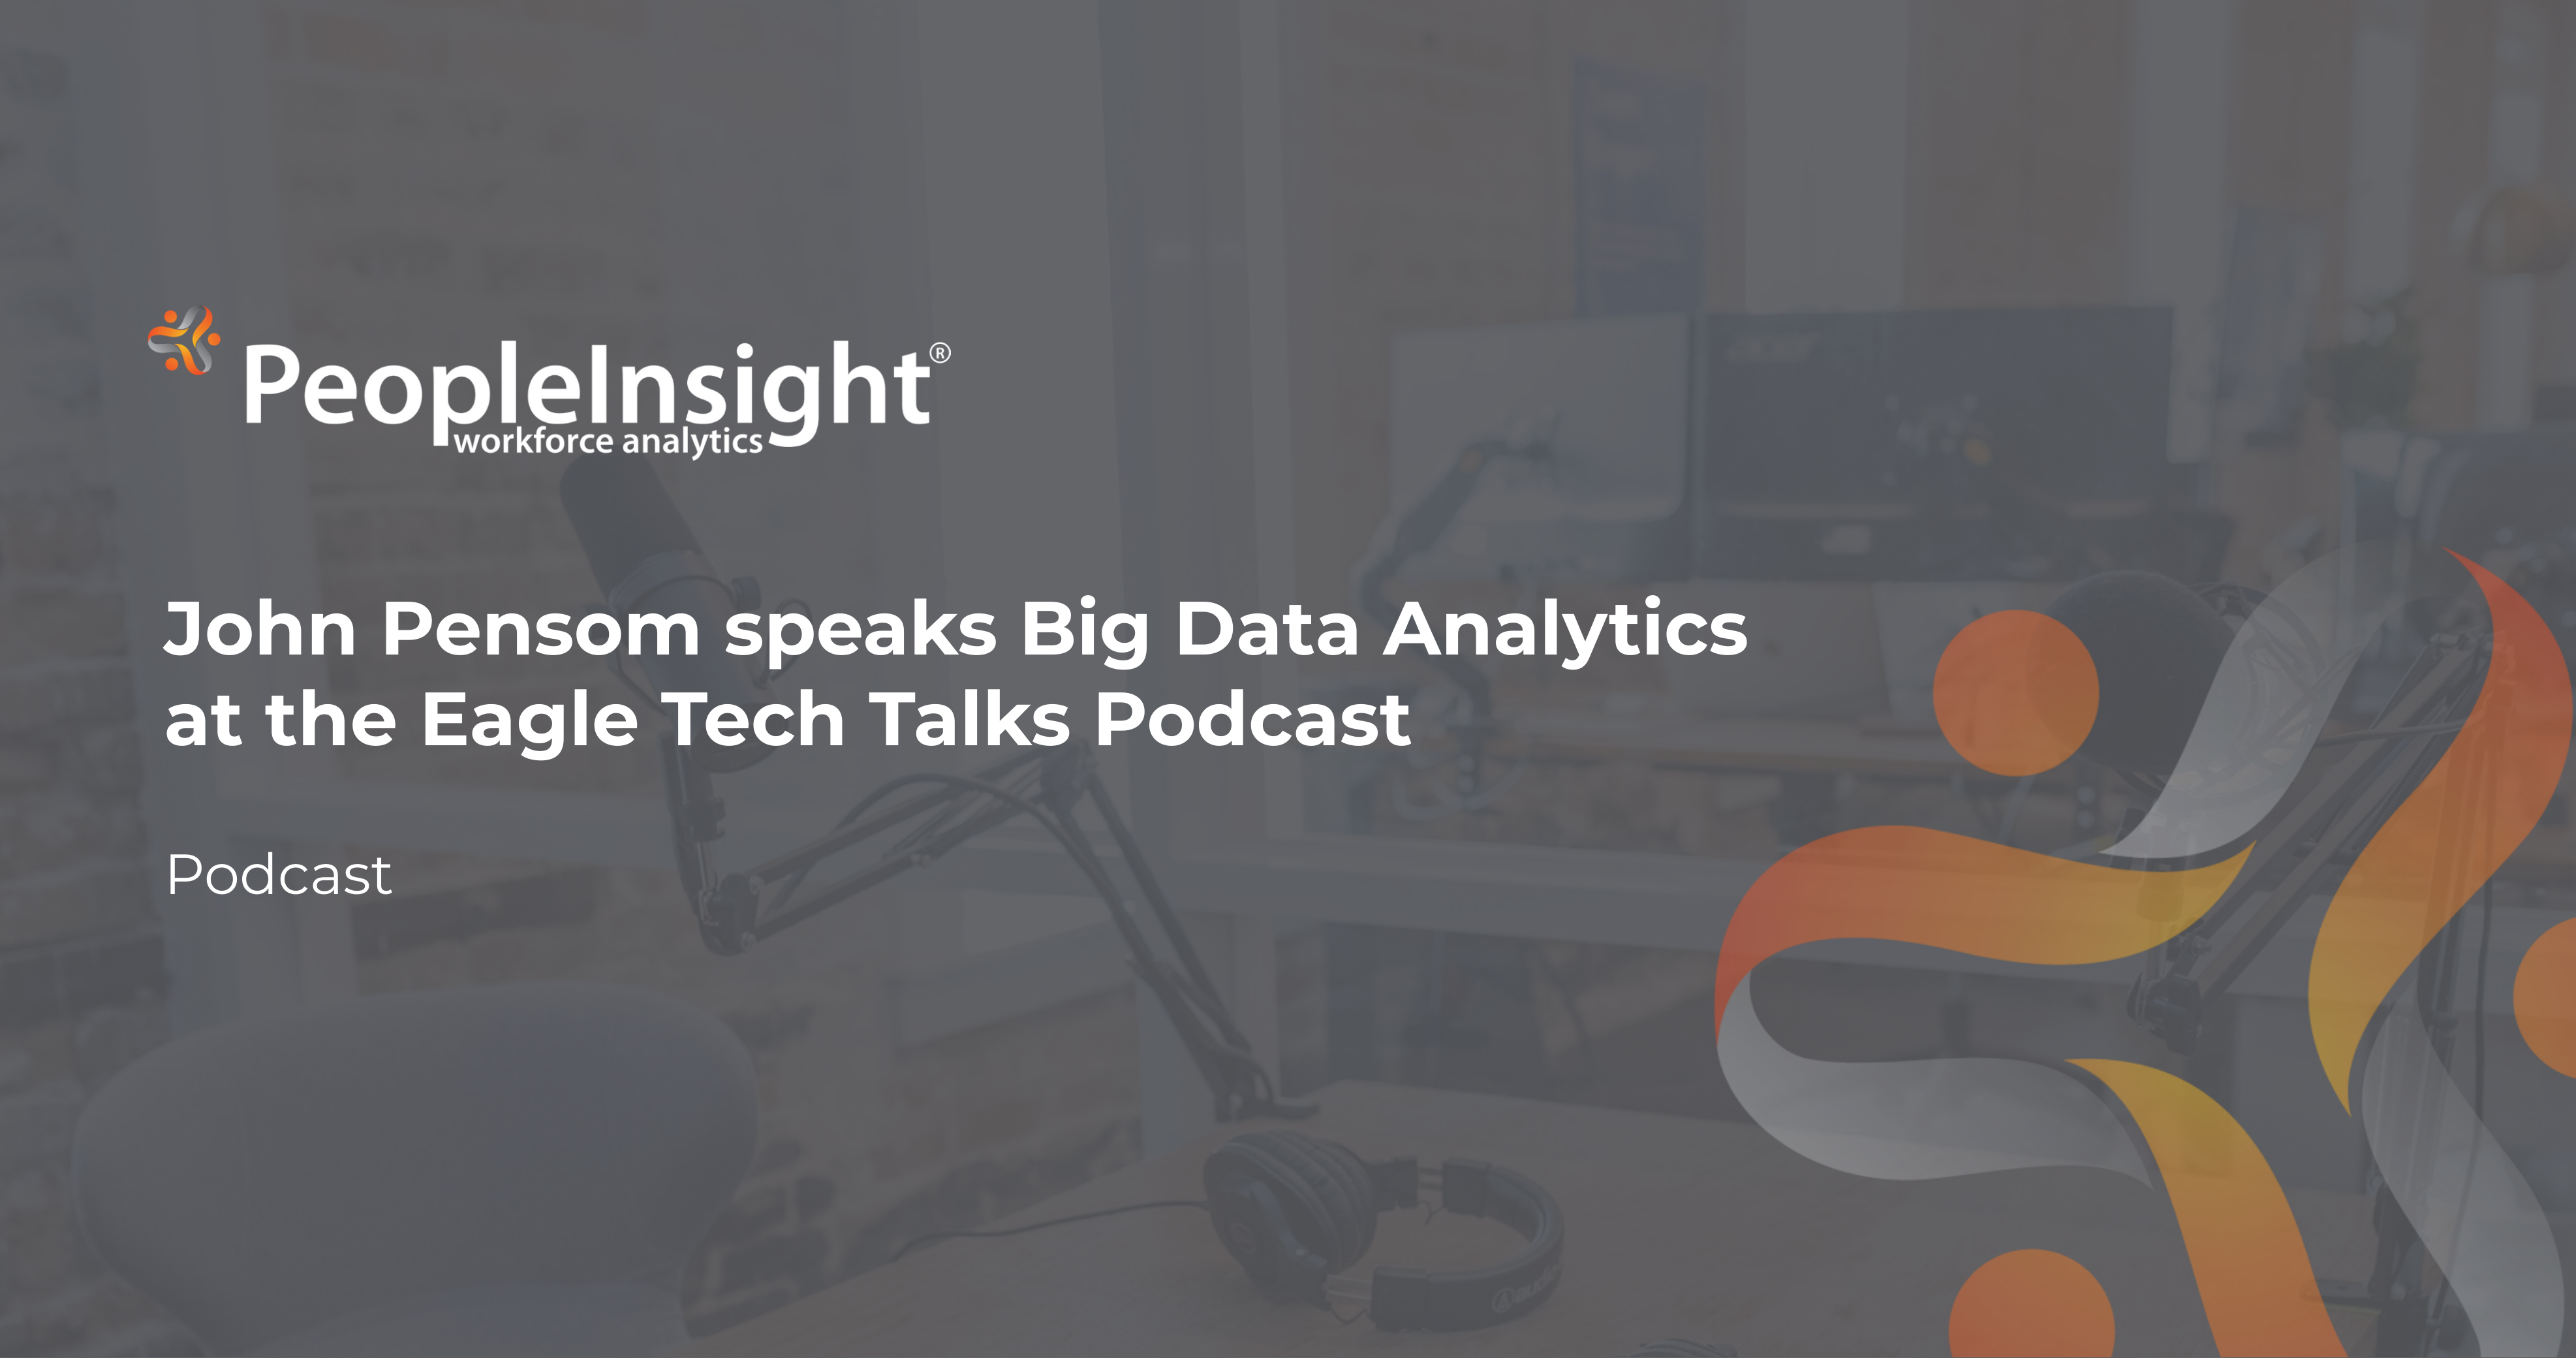 John Pensom speaks Big Data Analytics at the Eagle Tech Talks Podcast